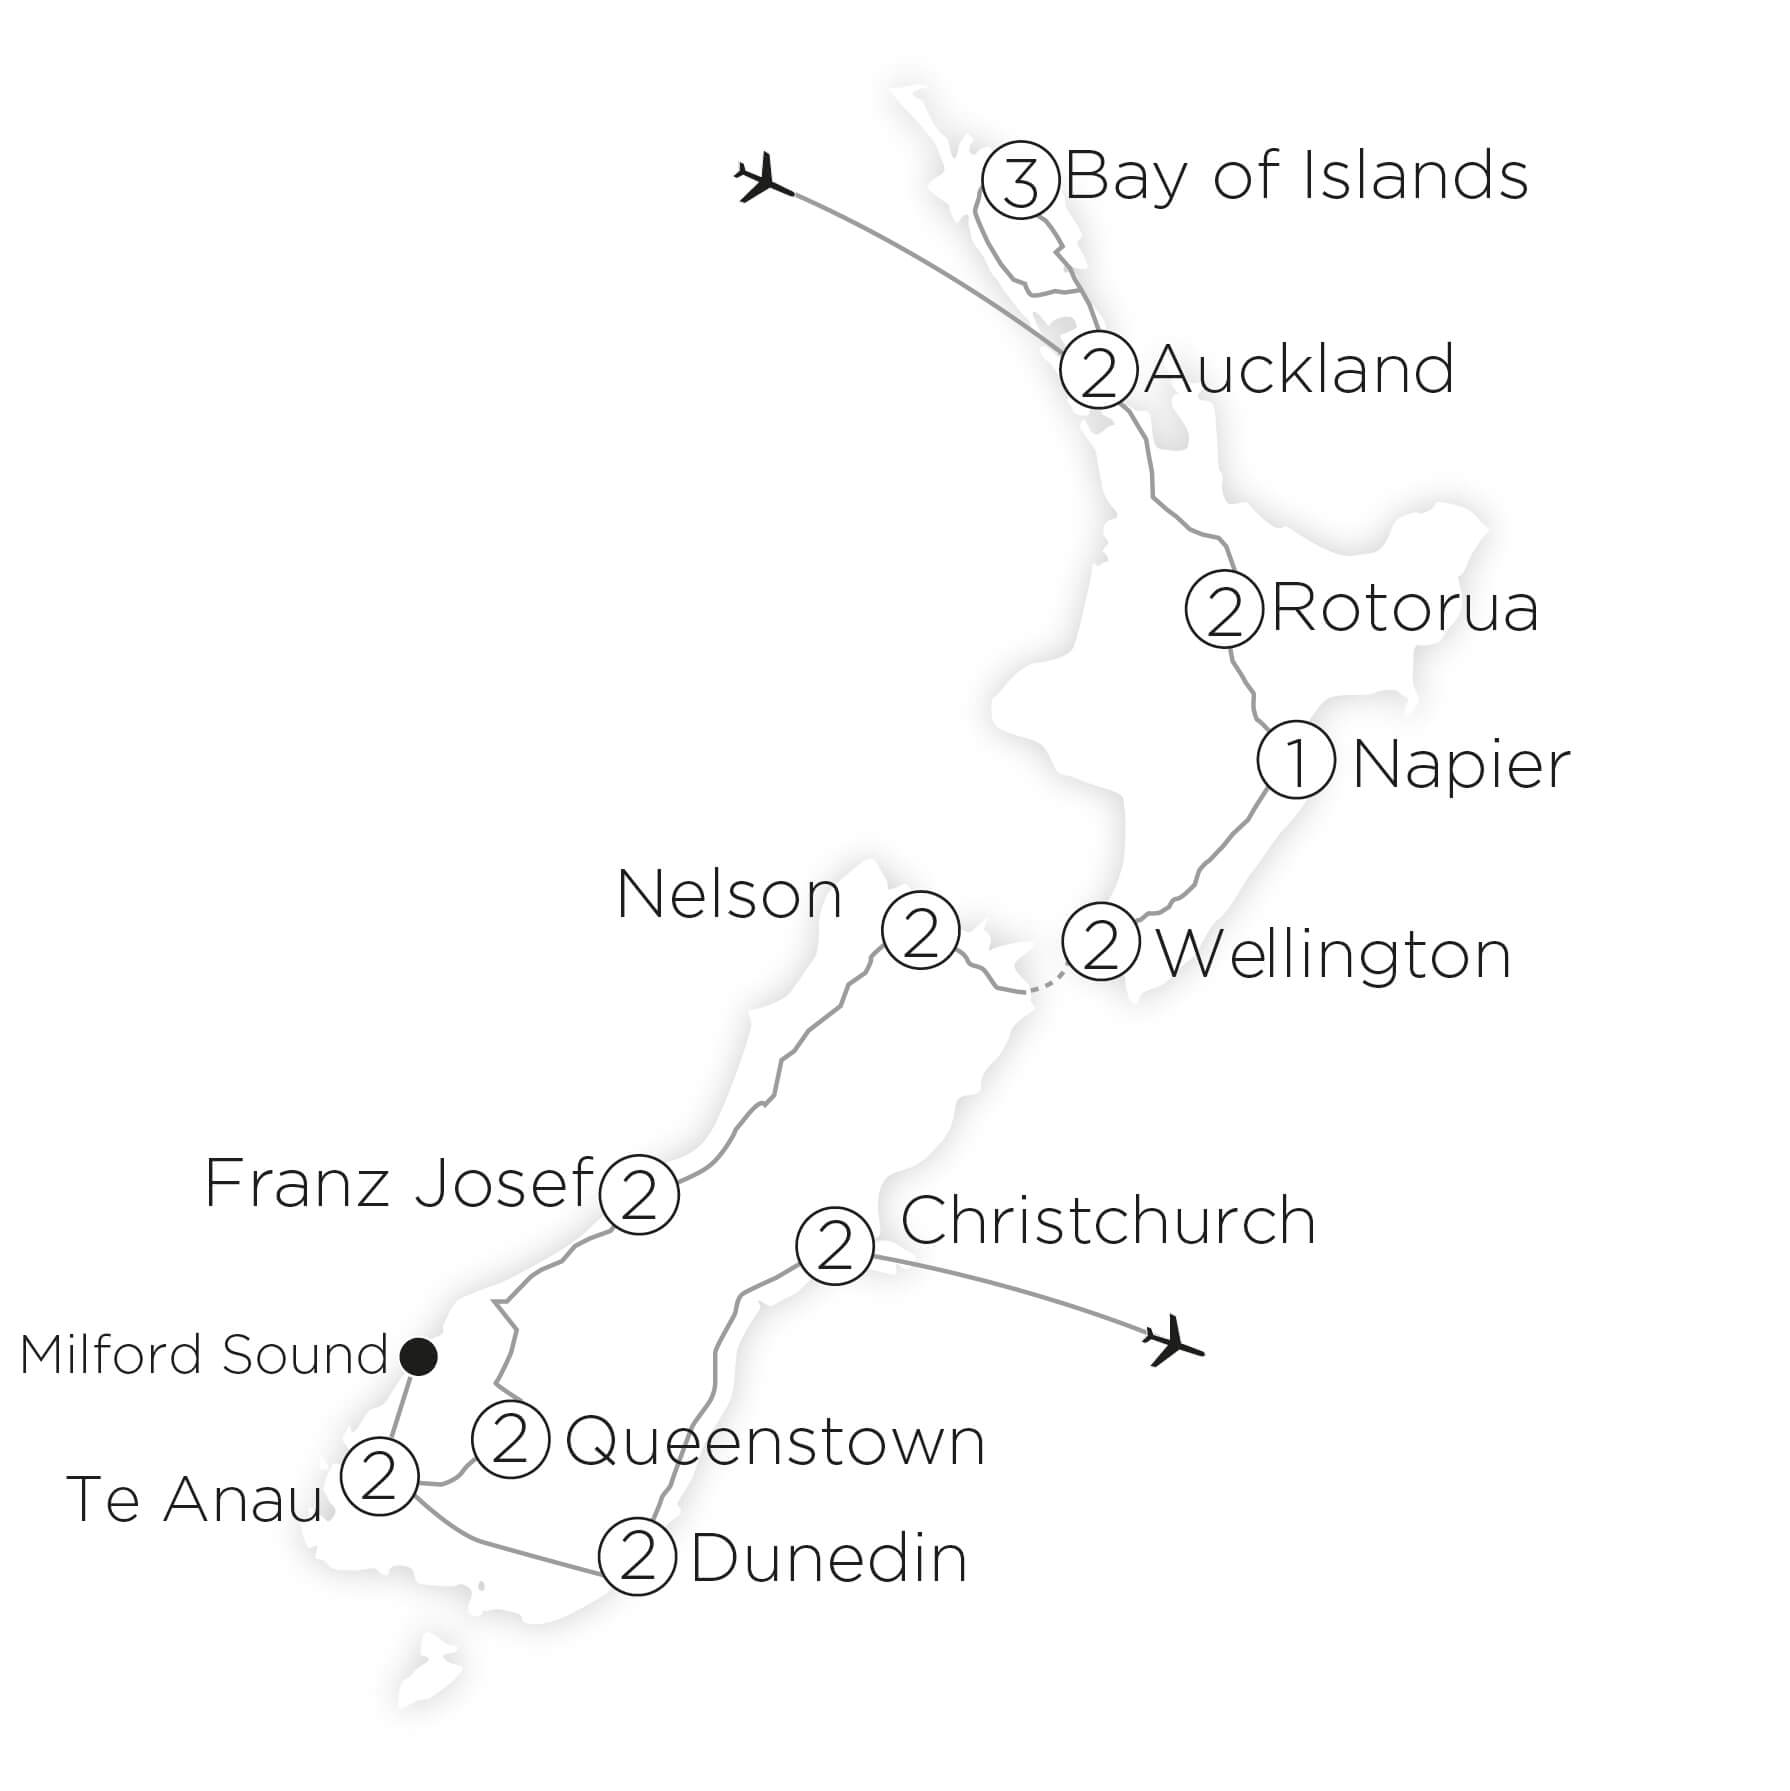 The Very Best of New Zealand tour map 2019_20